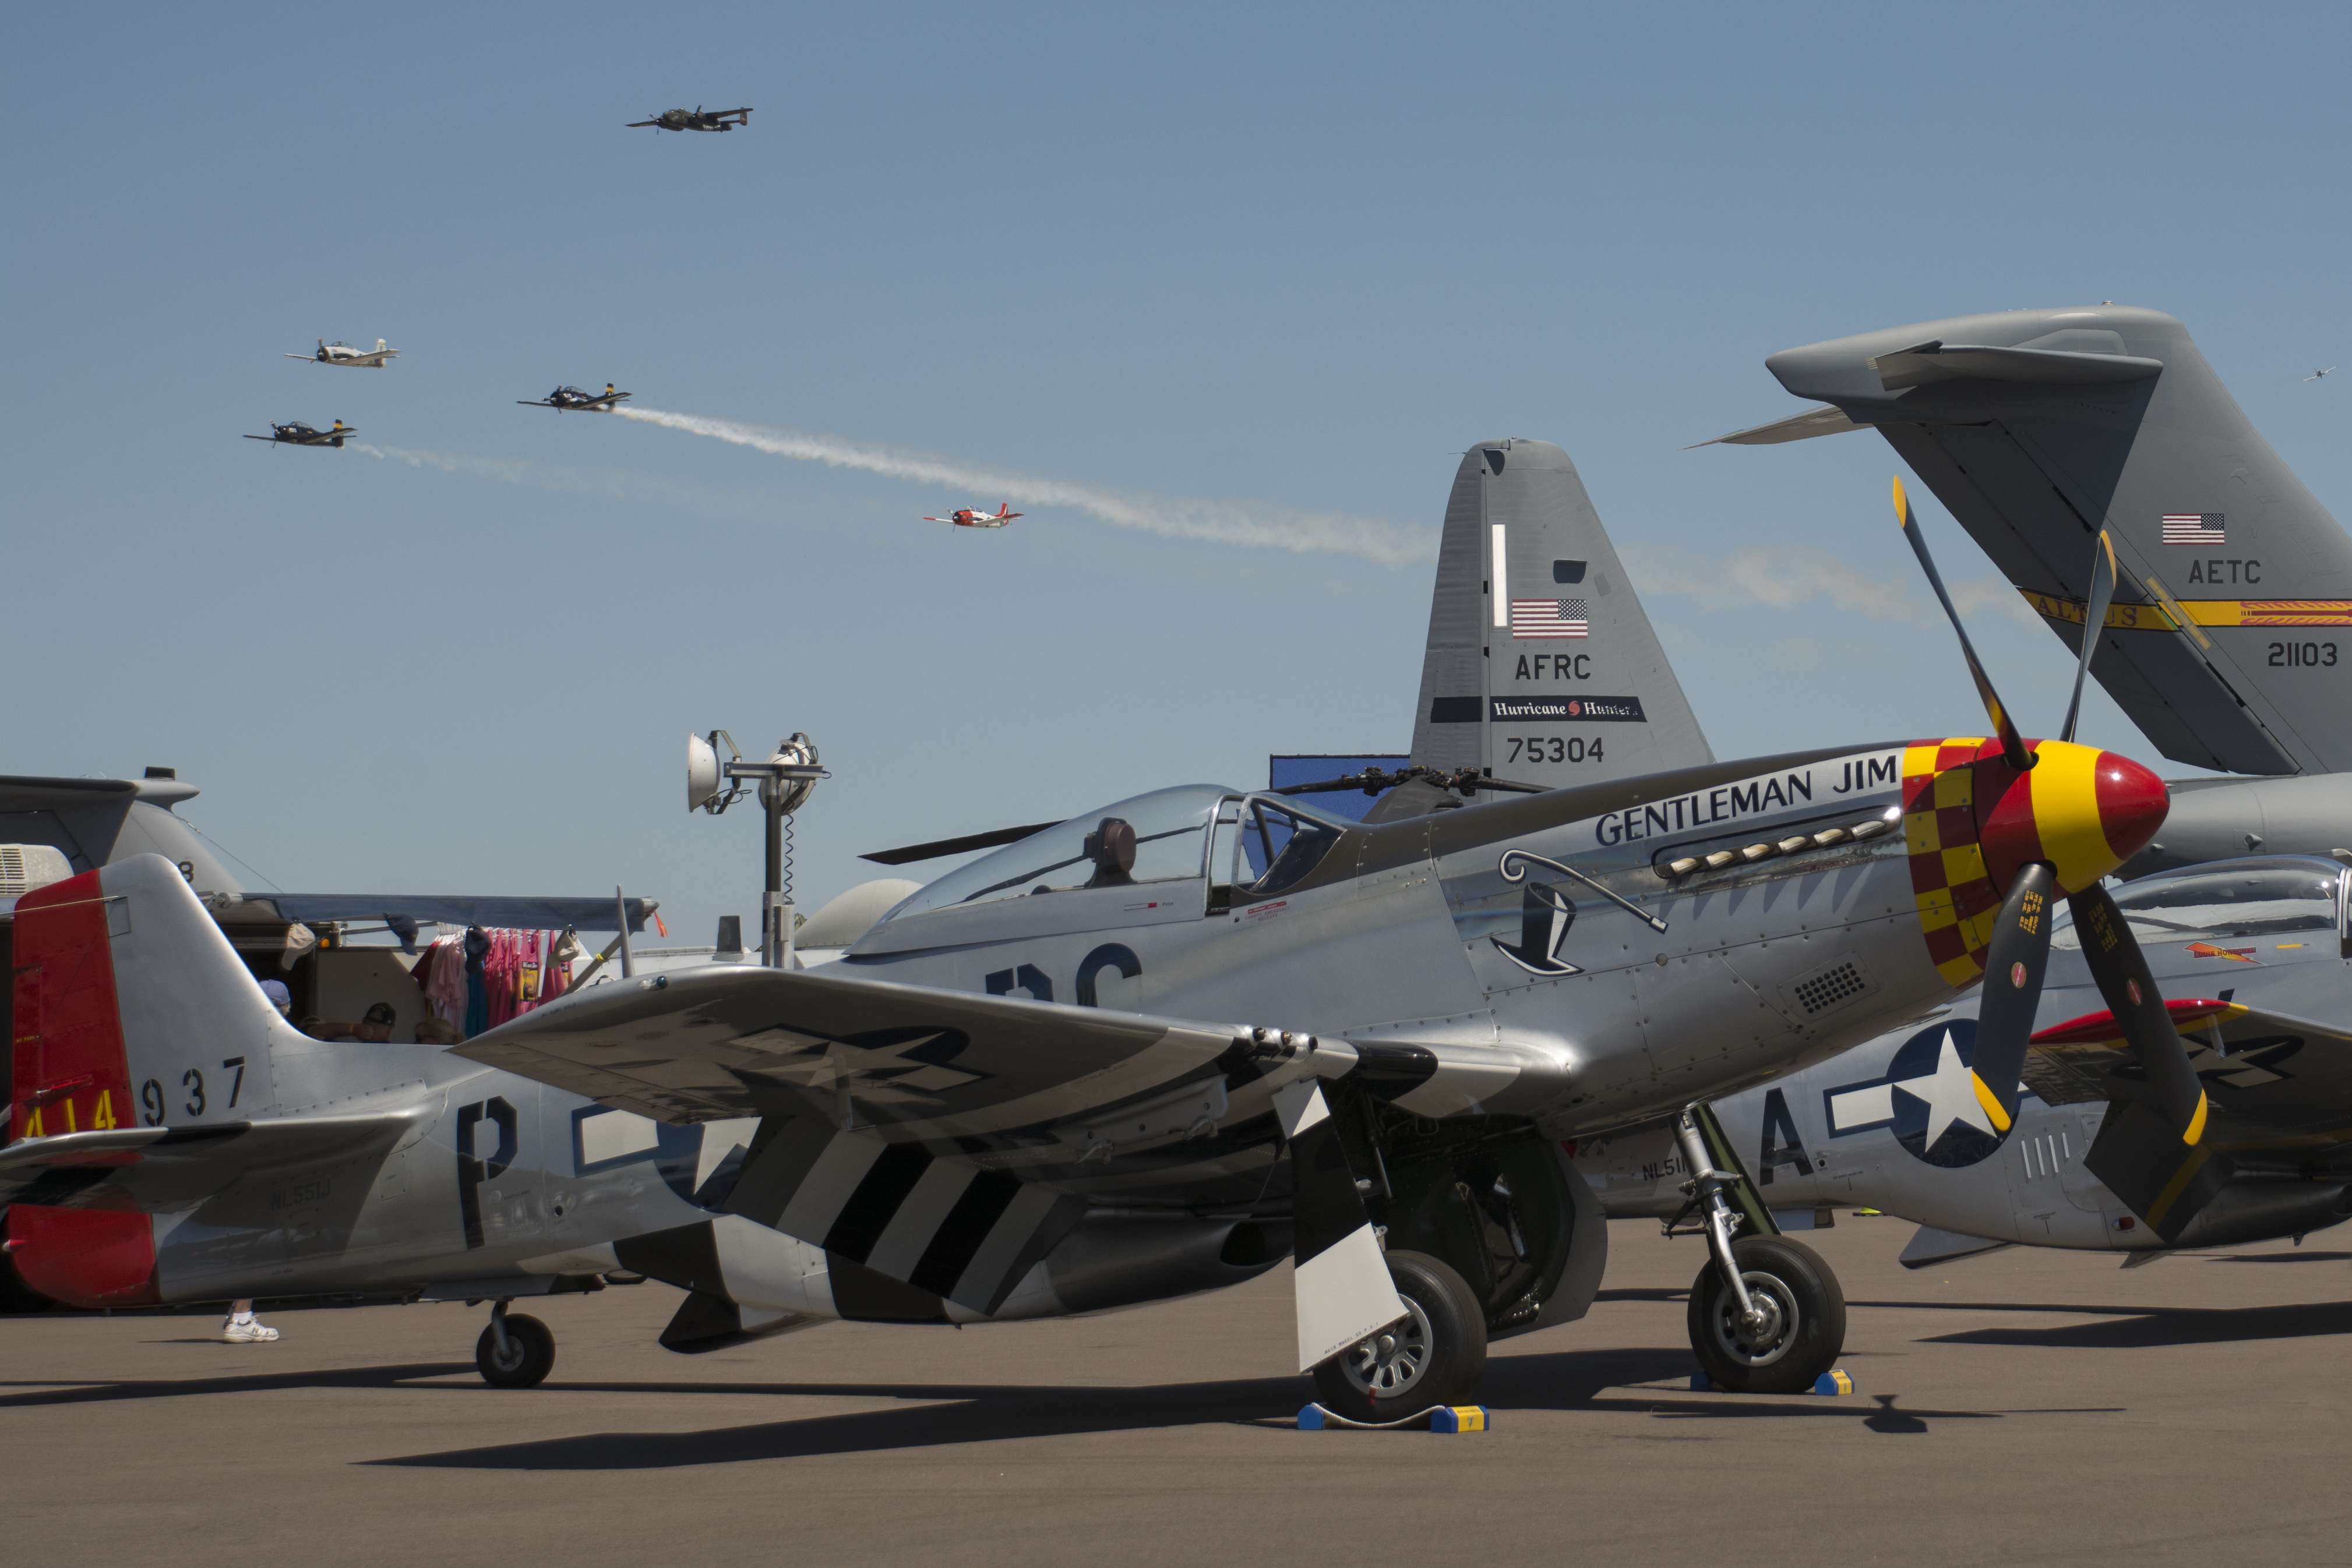 SUN 'n FUN International Fly-In & Expo Selected for the Grunt Style Air Show Majors Tour